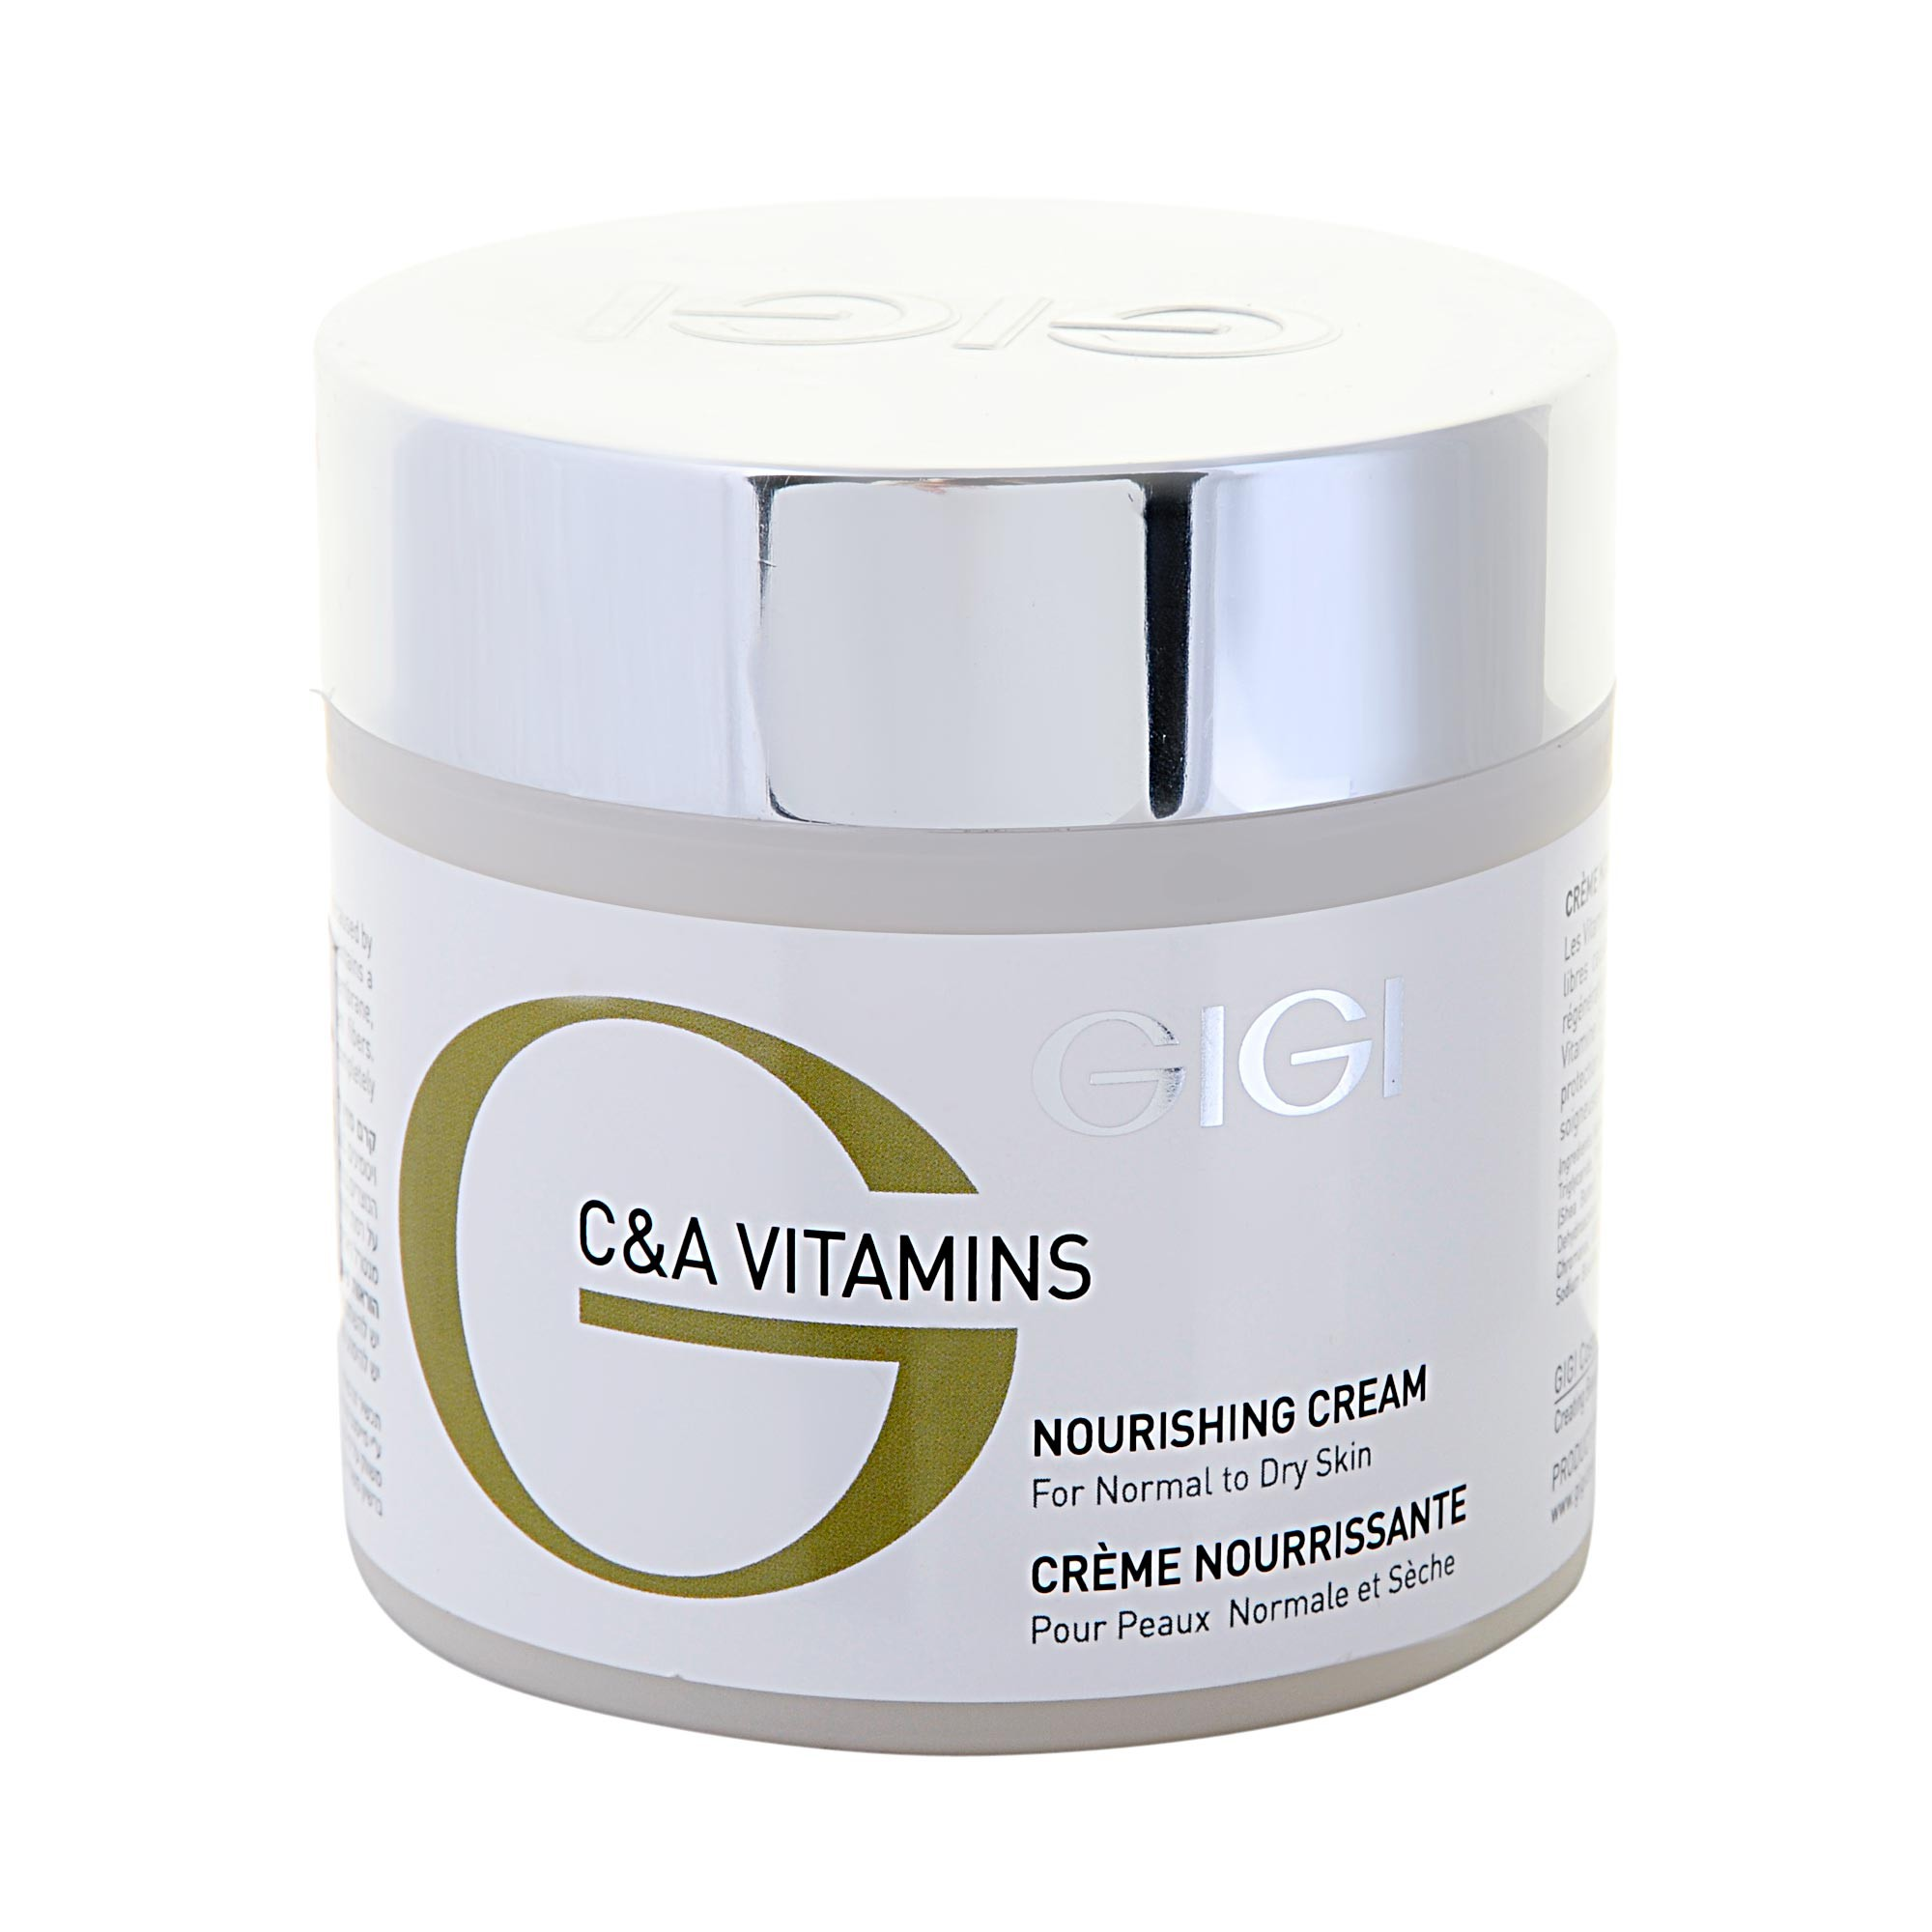 GIGI ���� ����������� / Nourishing Cream VITAMINS C&A 250��